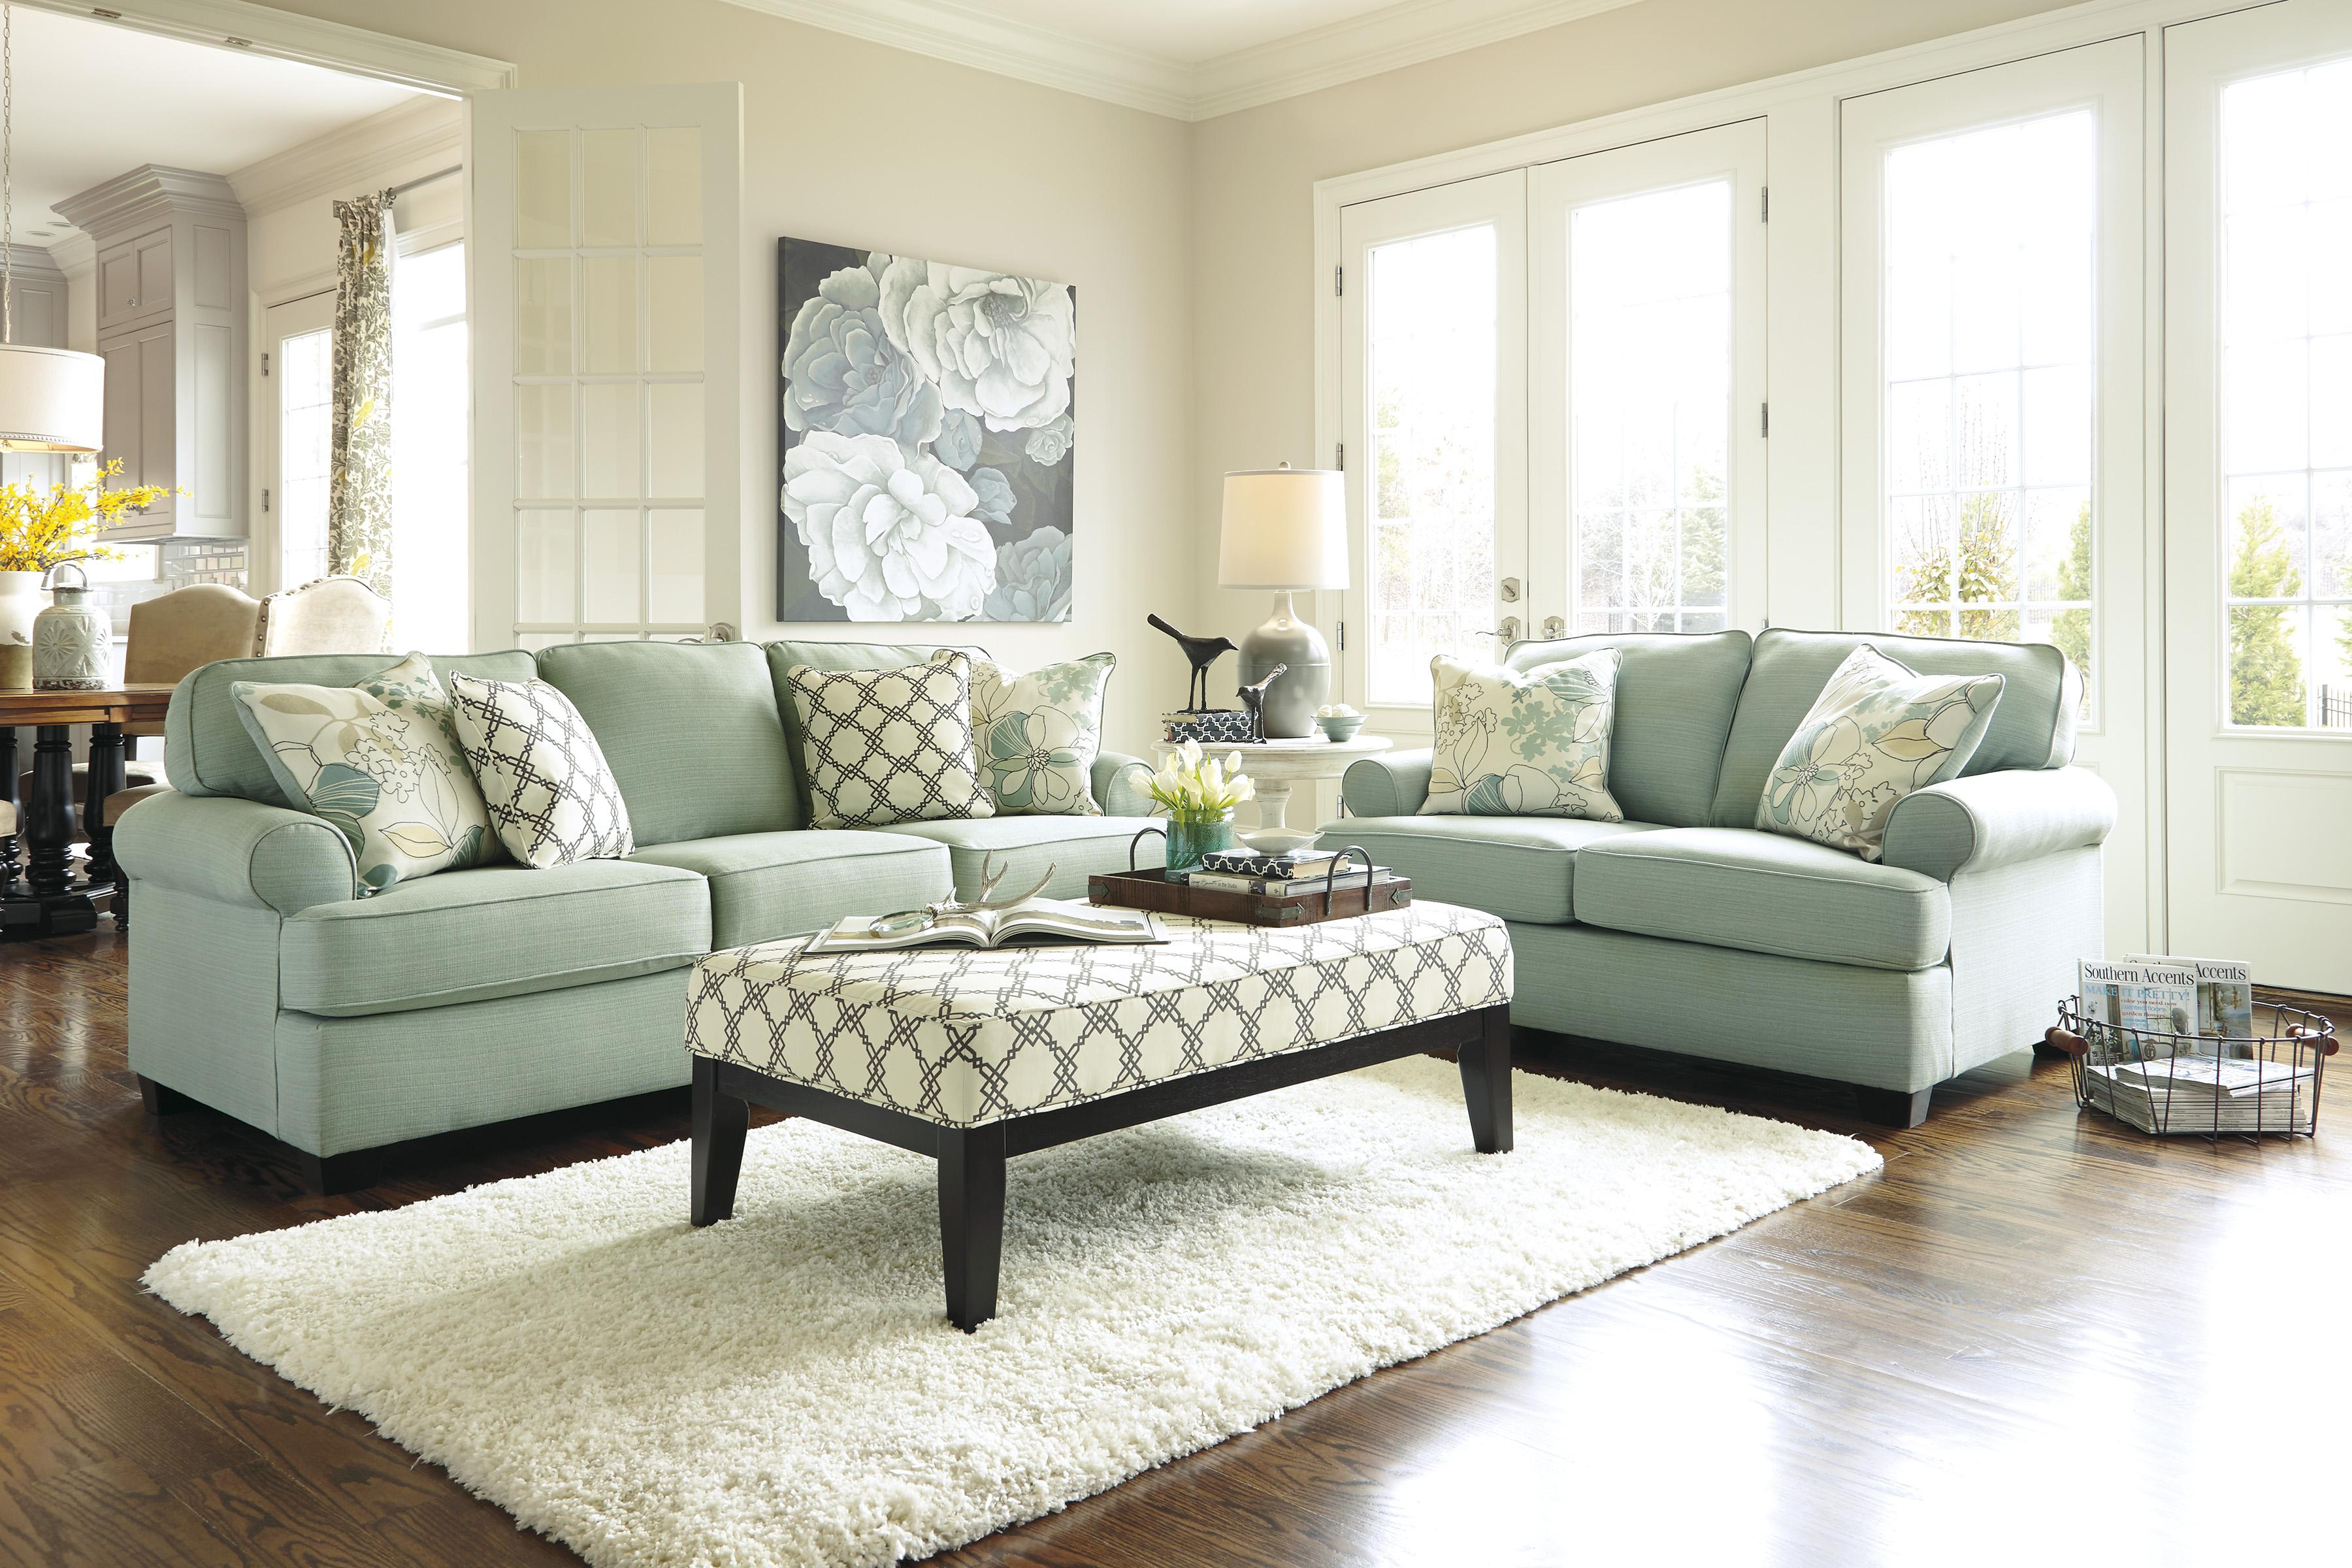 Signature Design by Ashley Daystar - Seafoam Stationary Living Room Group - Item Number: 28200 Living Room Group 3